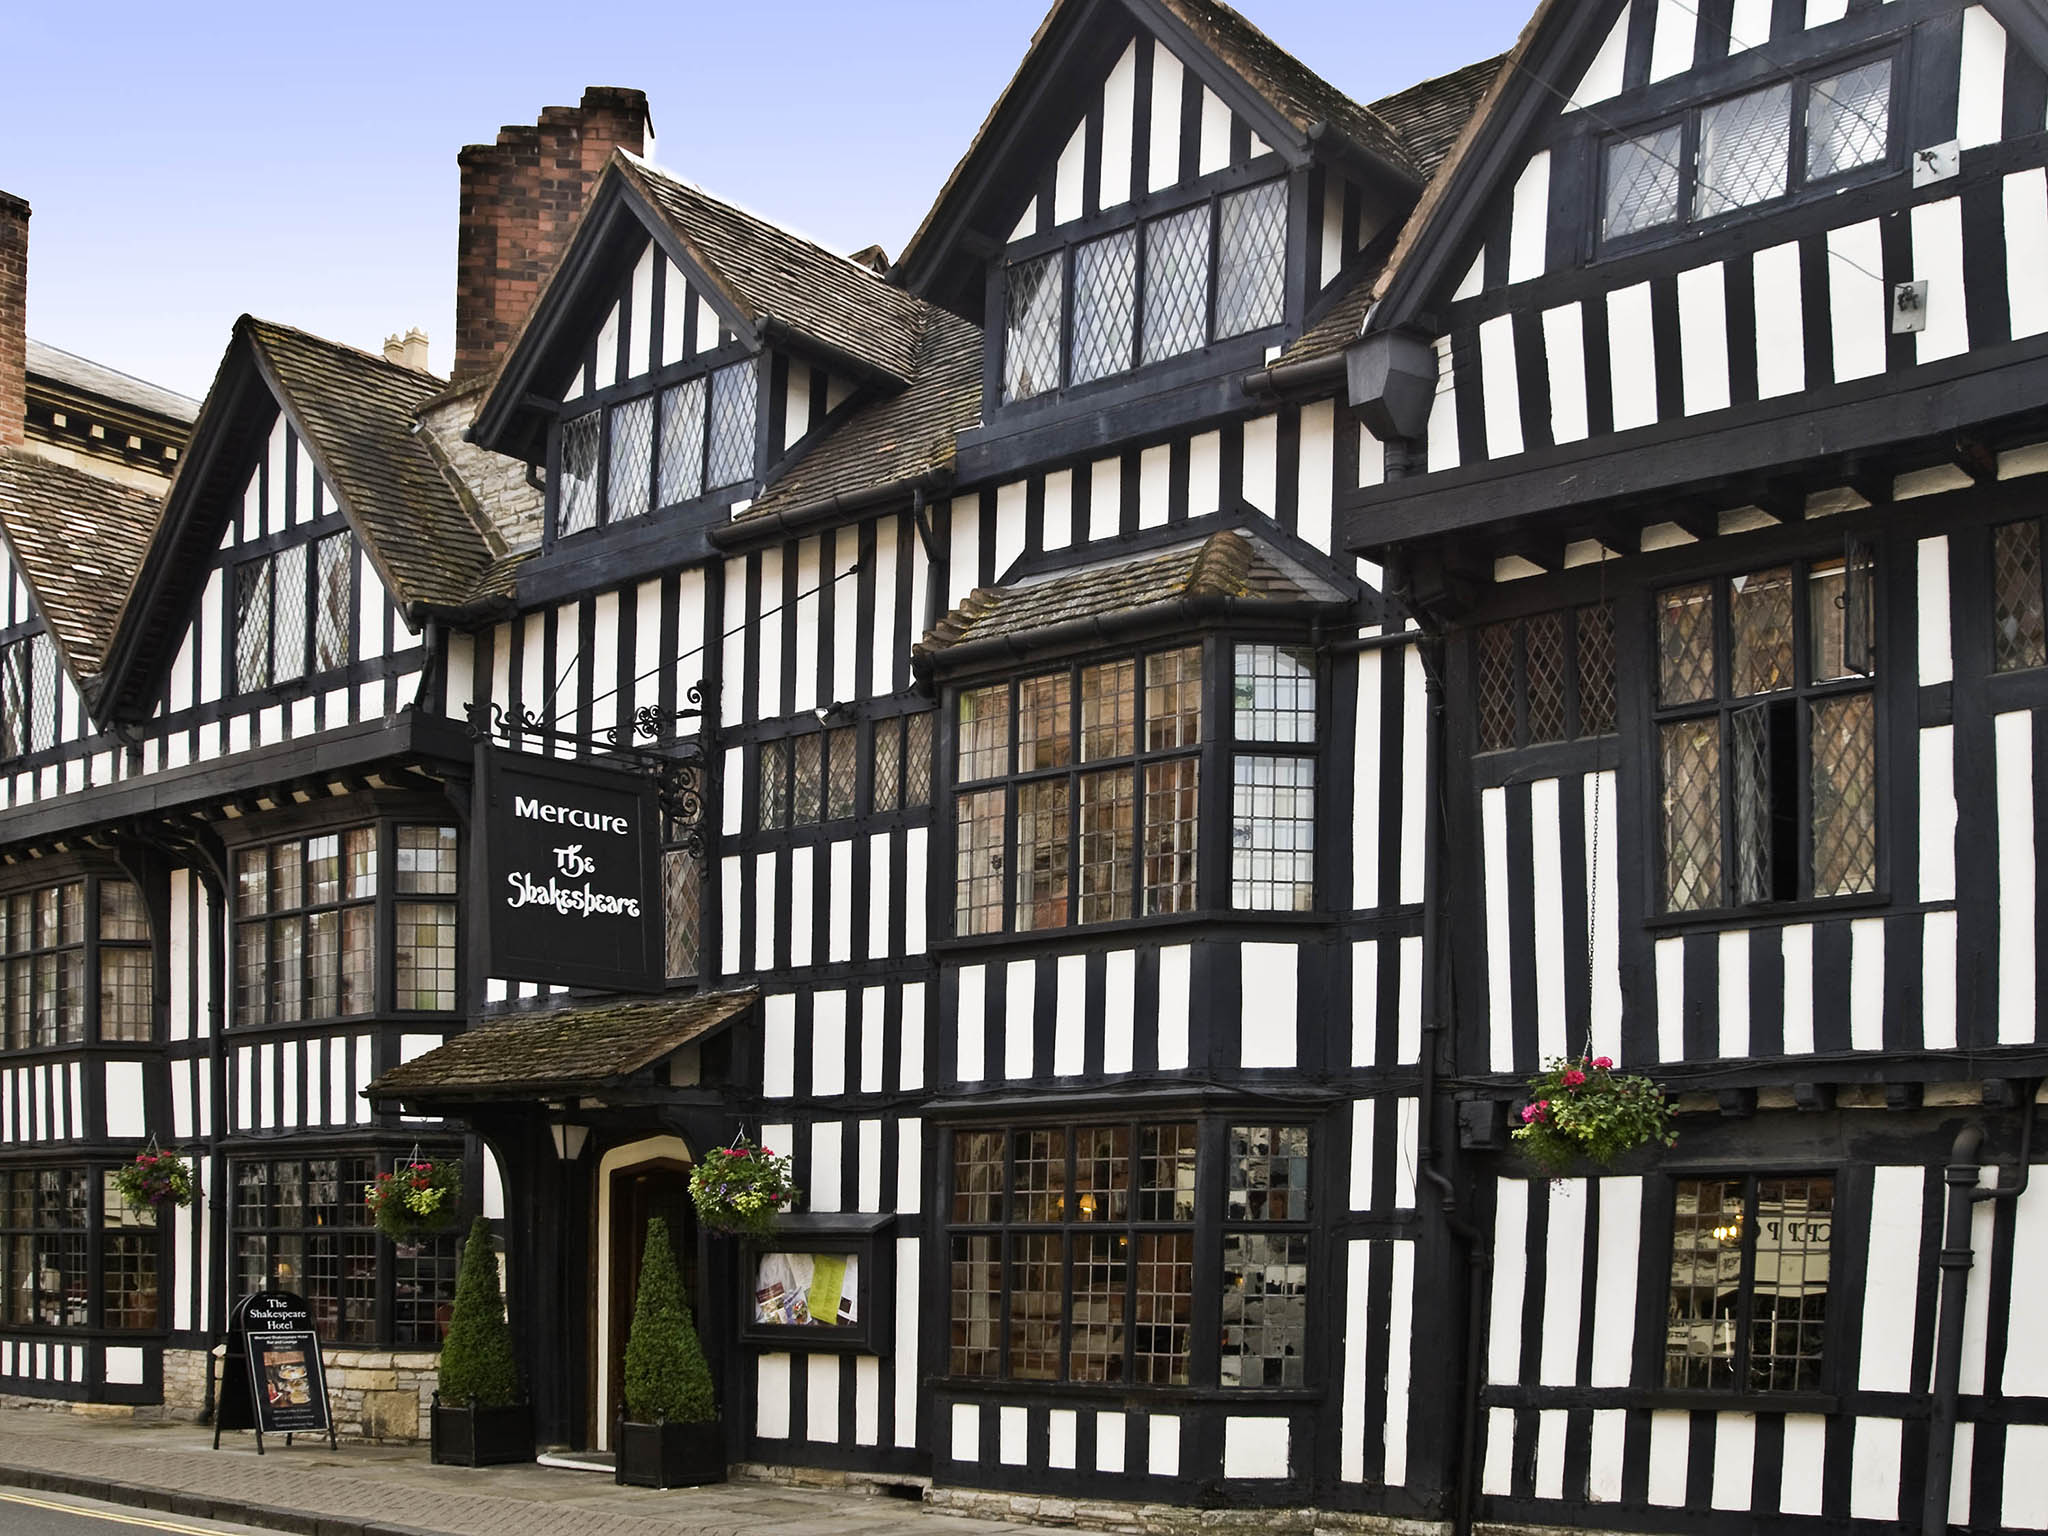 Otel – Mercure Stratford upon Avon Shakespeare Hotel